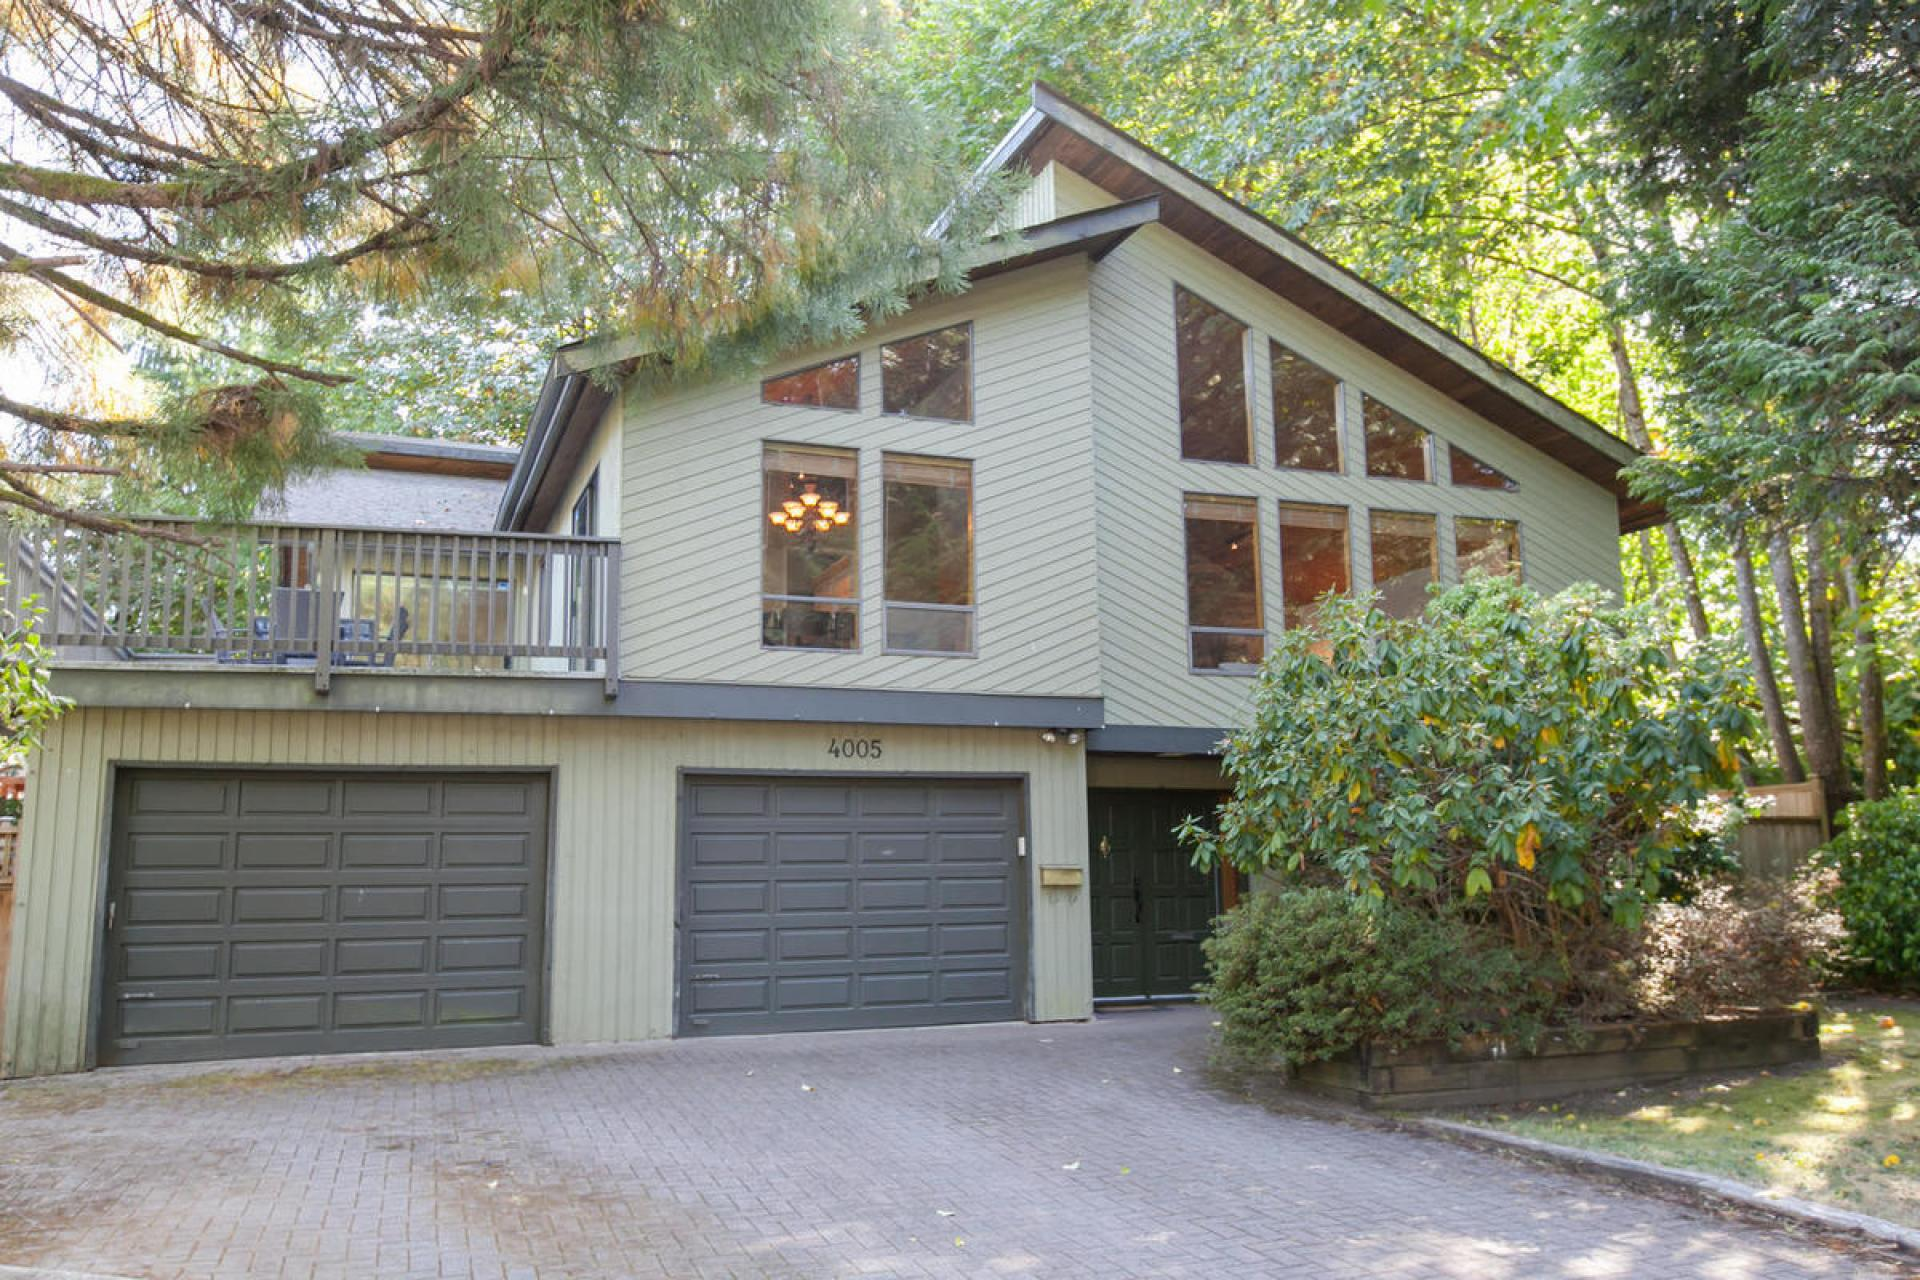 4005 Brockton Crescent, Indian River, North Vancouver